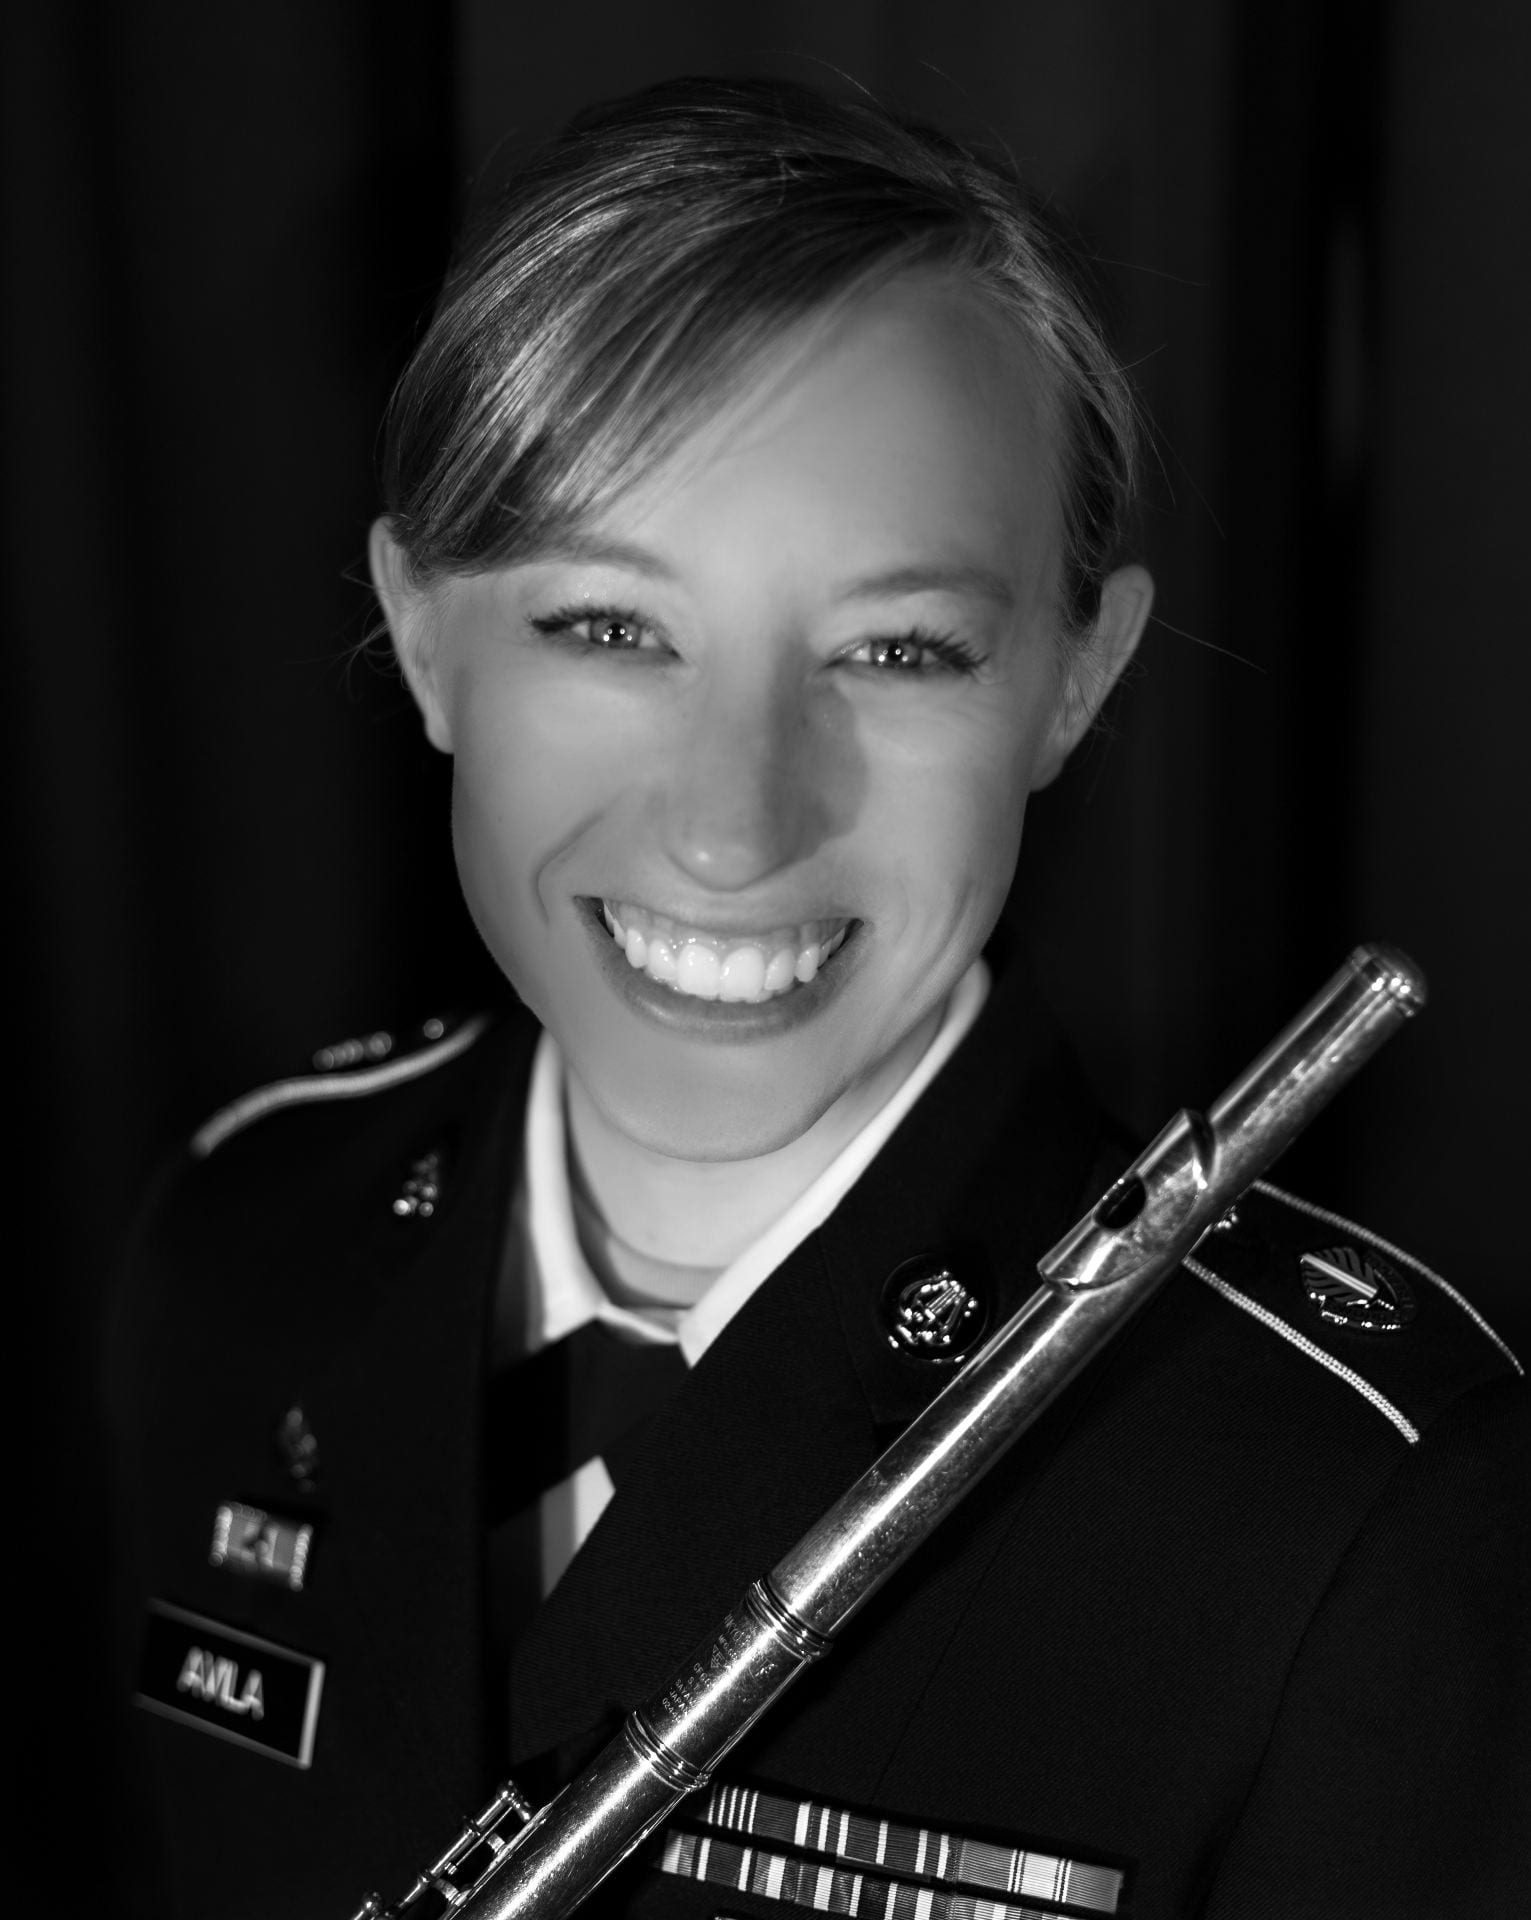 Alum Valeria Cowan in her armed forces uniform with her flute.